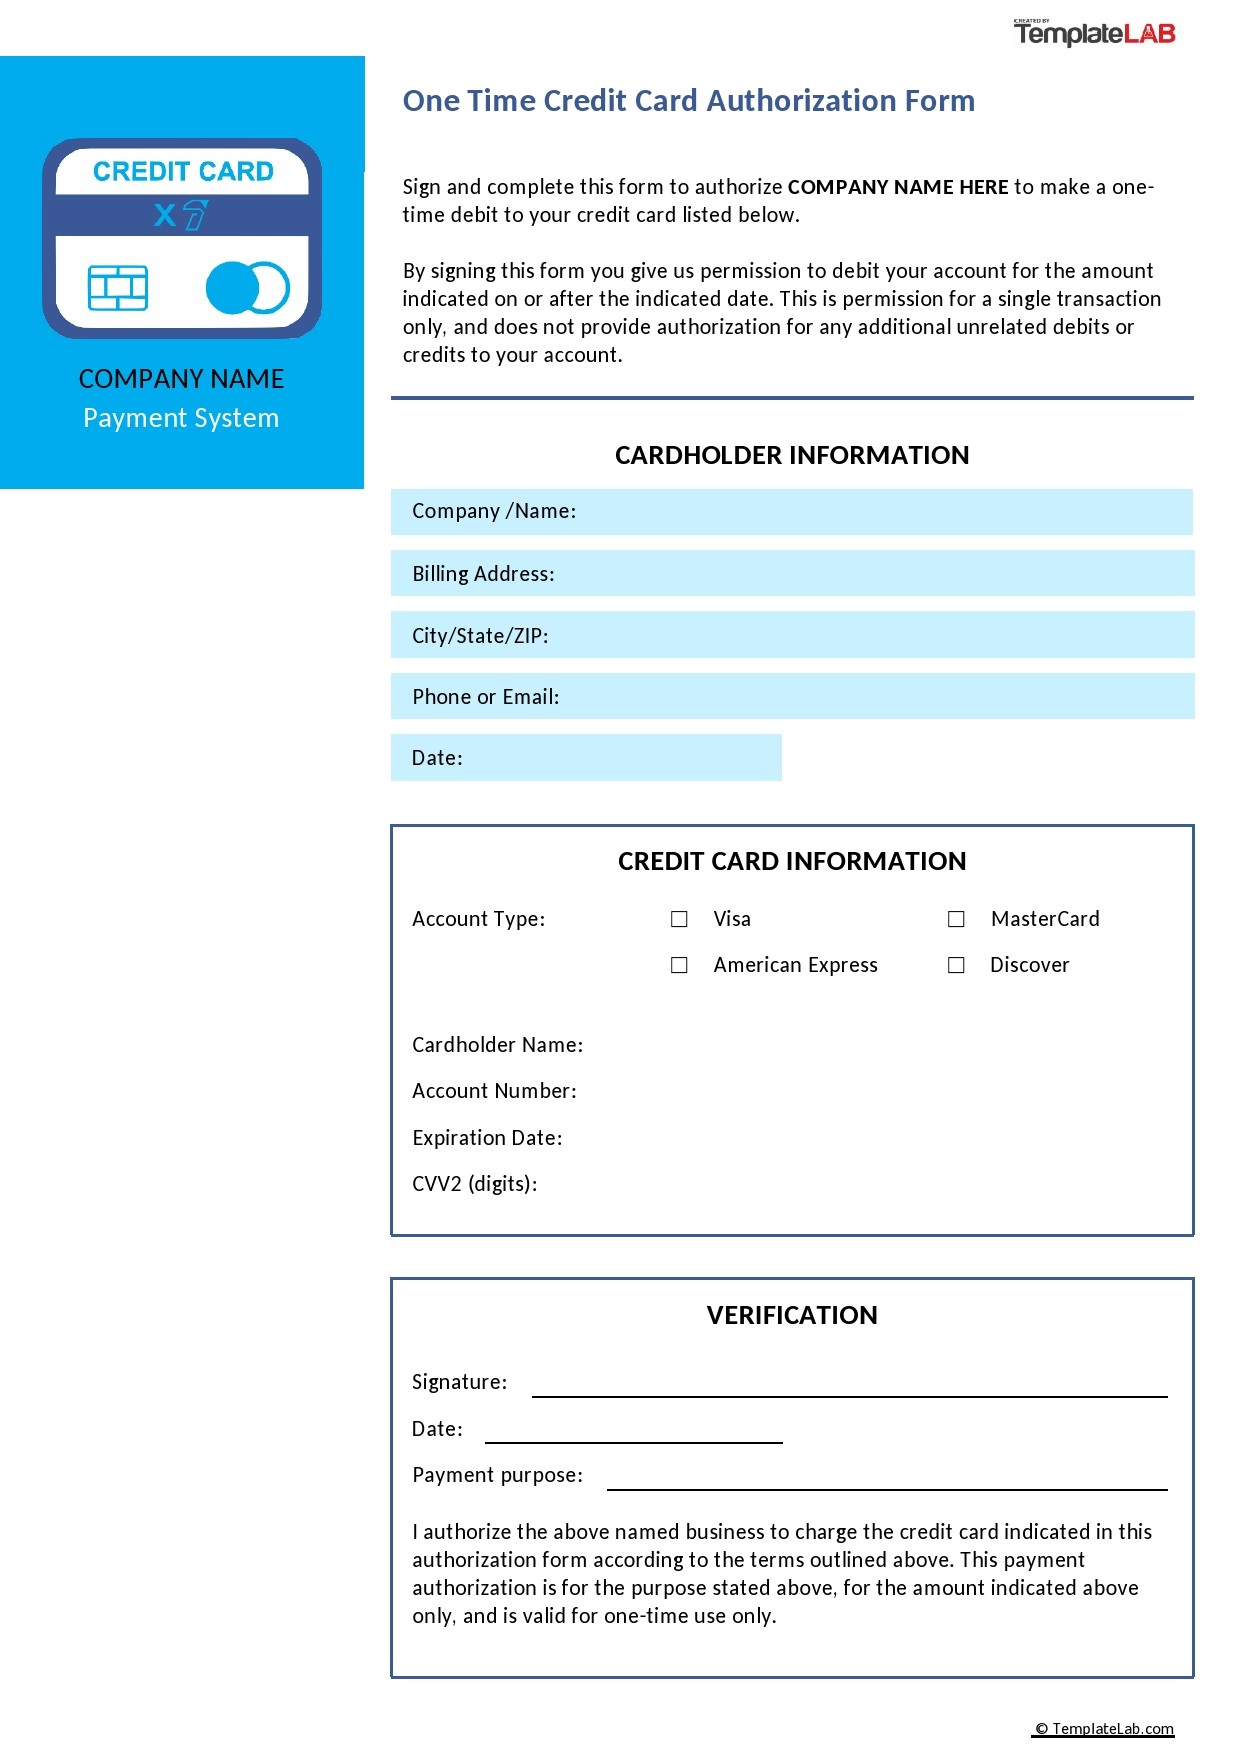 Free One Time Credit Card Authorization Form - TemplateLab.com